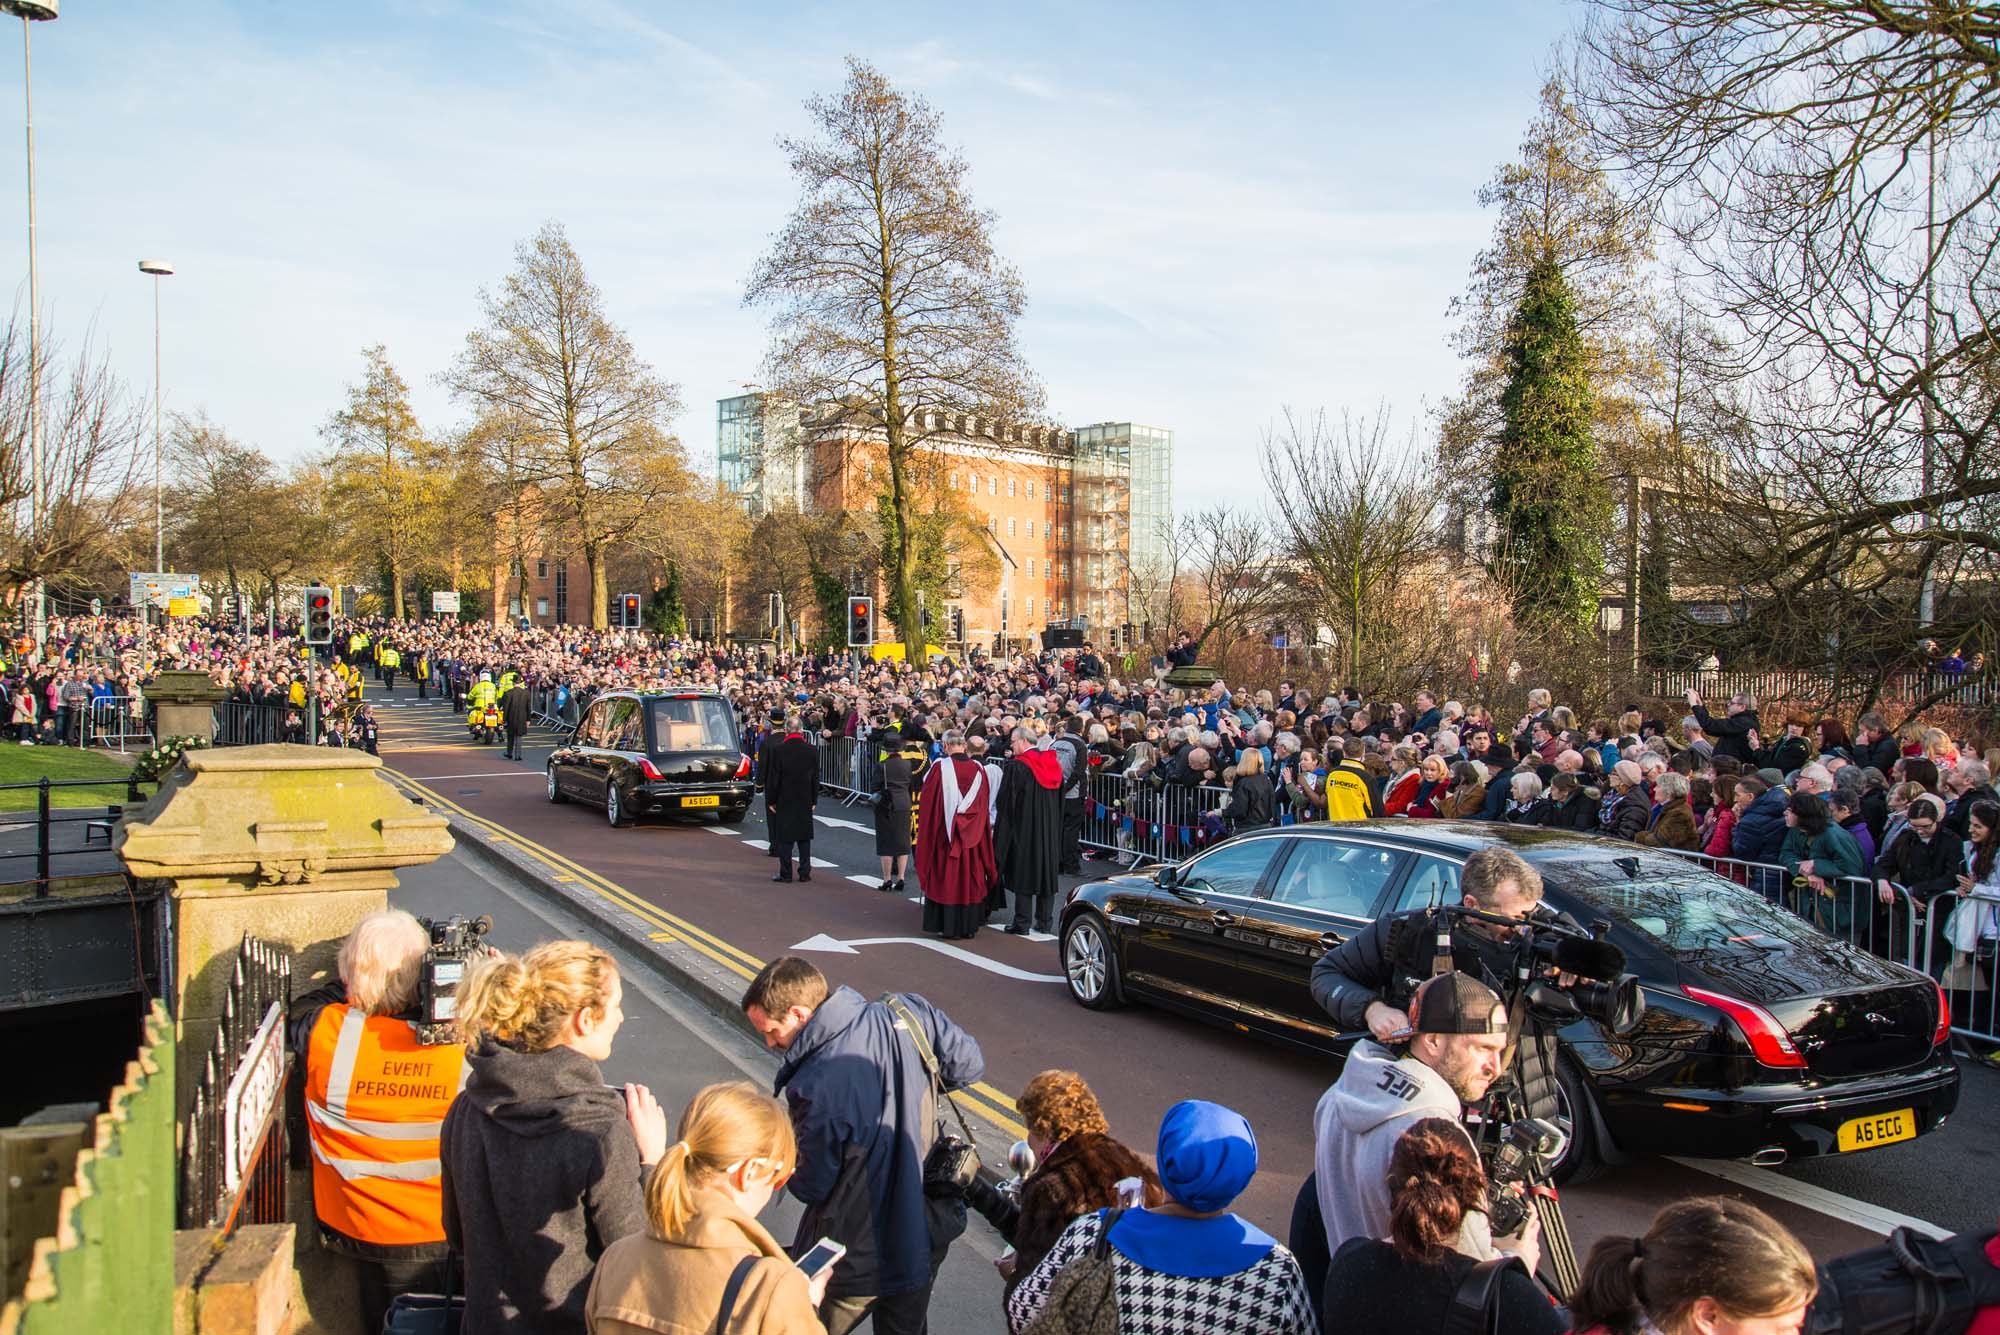 Richard III's remains passing over the Bow Bridge with large crowds watching, 2015 -